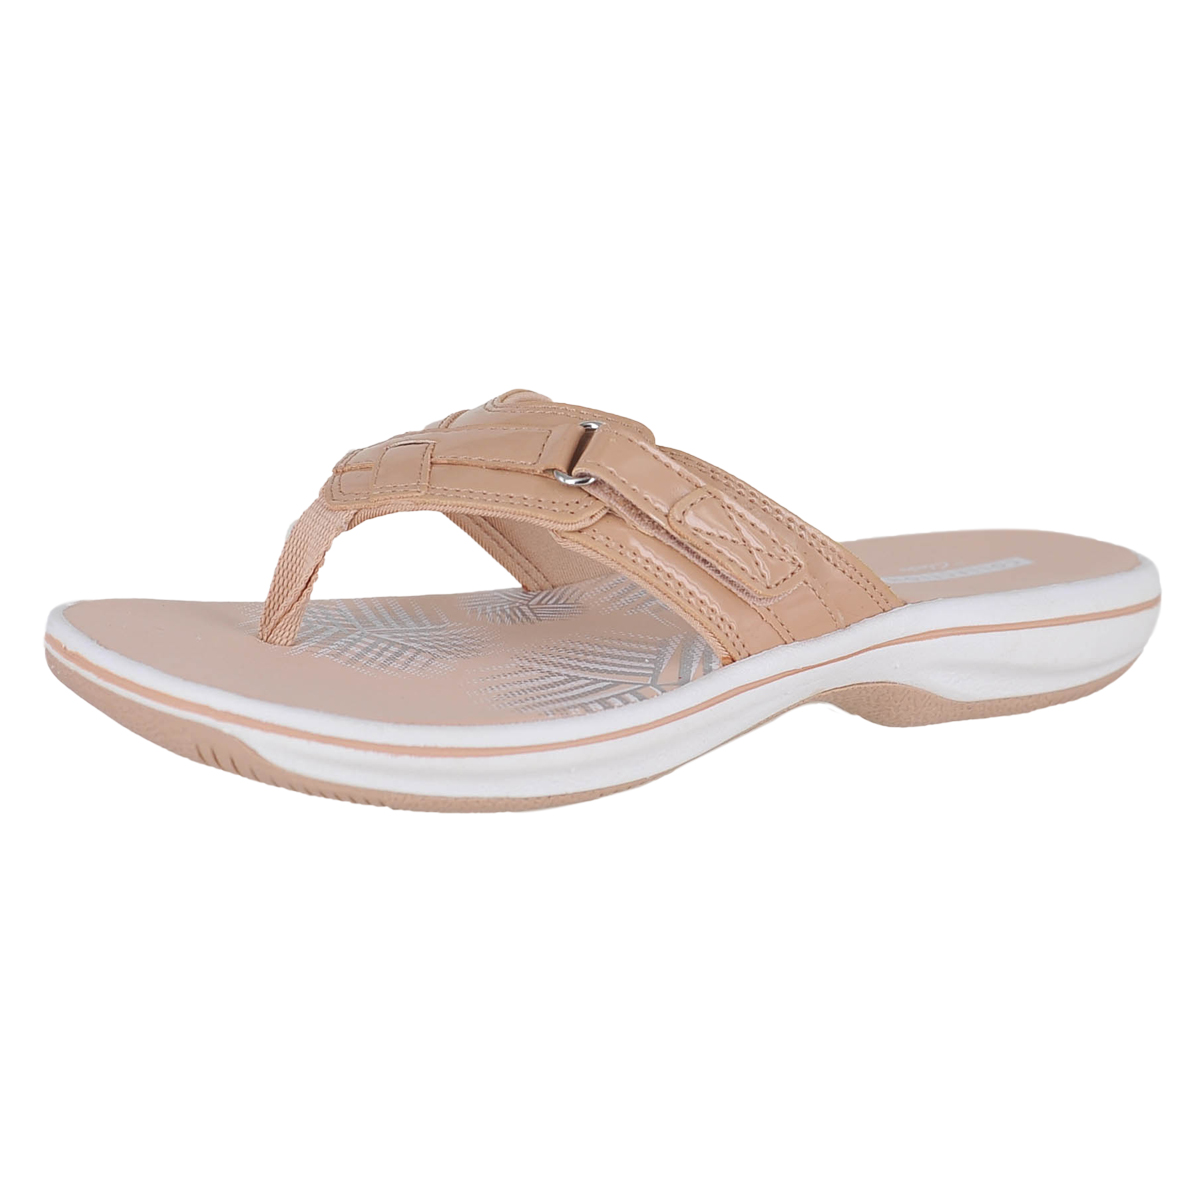 88908481205 Details about Clarks Breeze Sea Nude Patent Womens Flip-Flop Size 10M